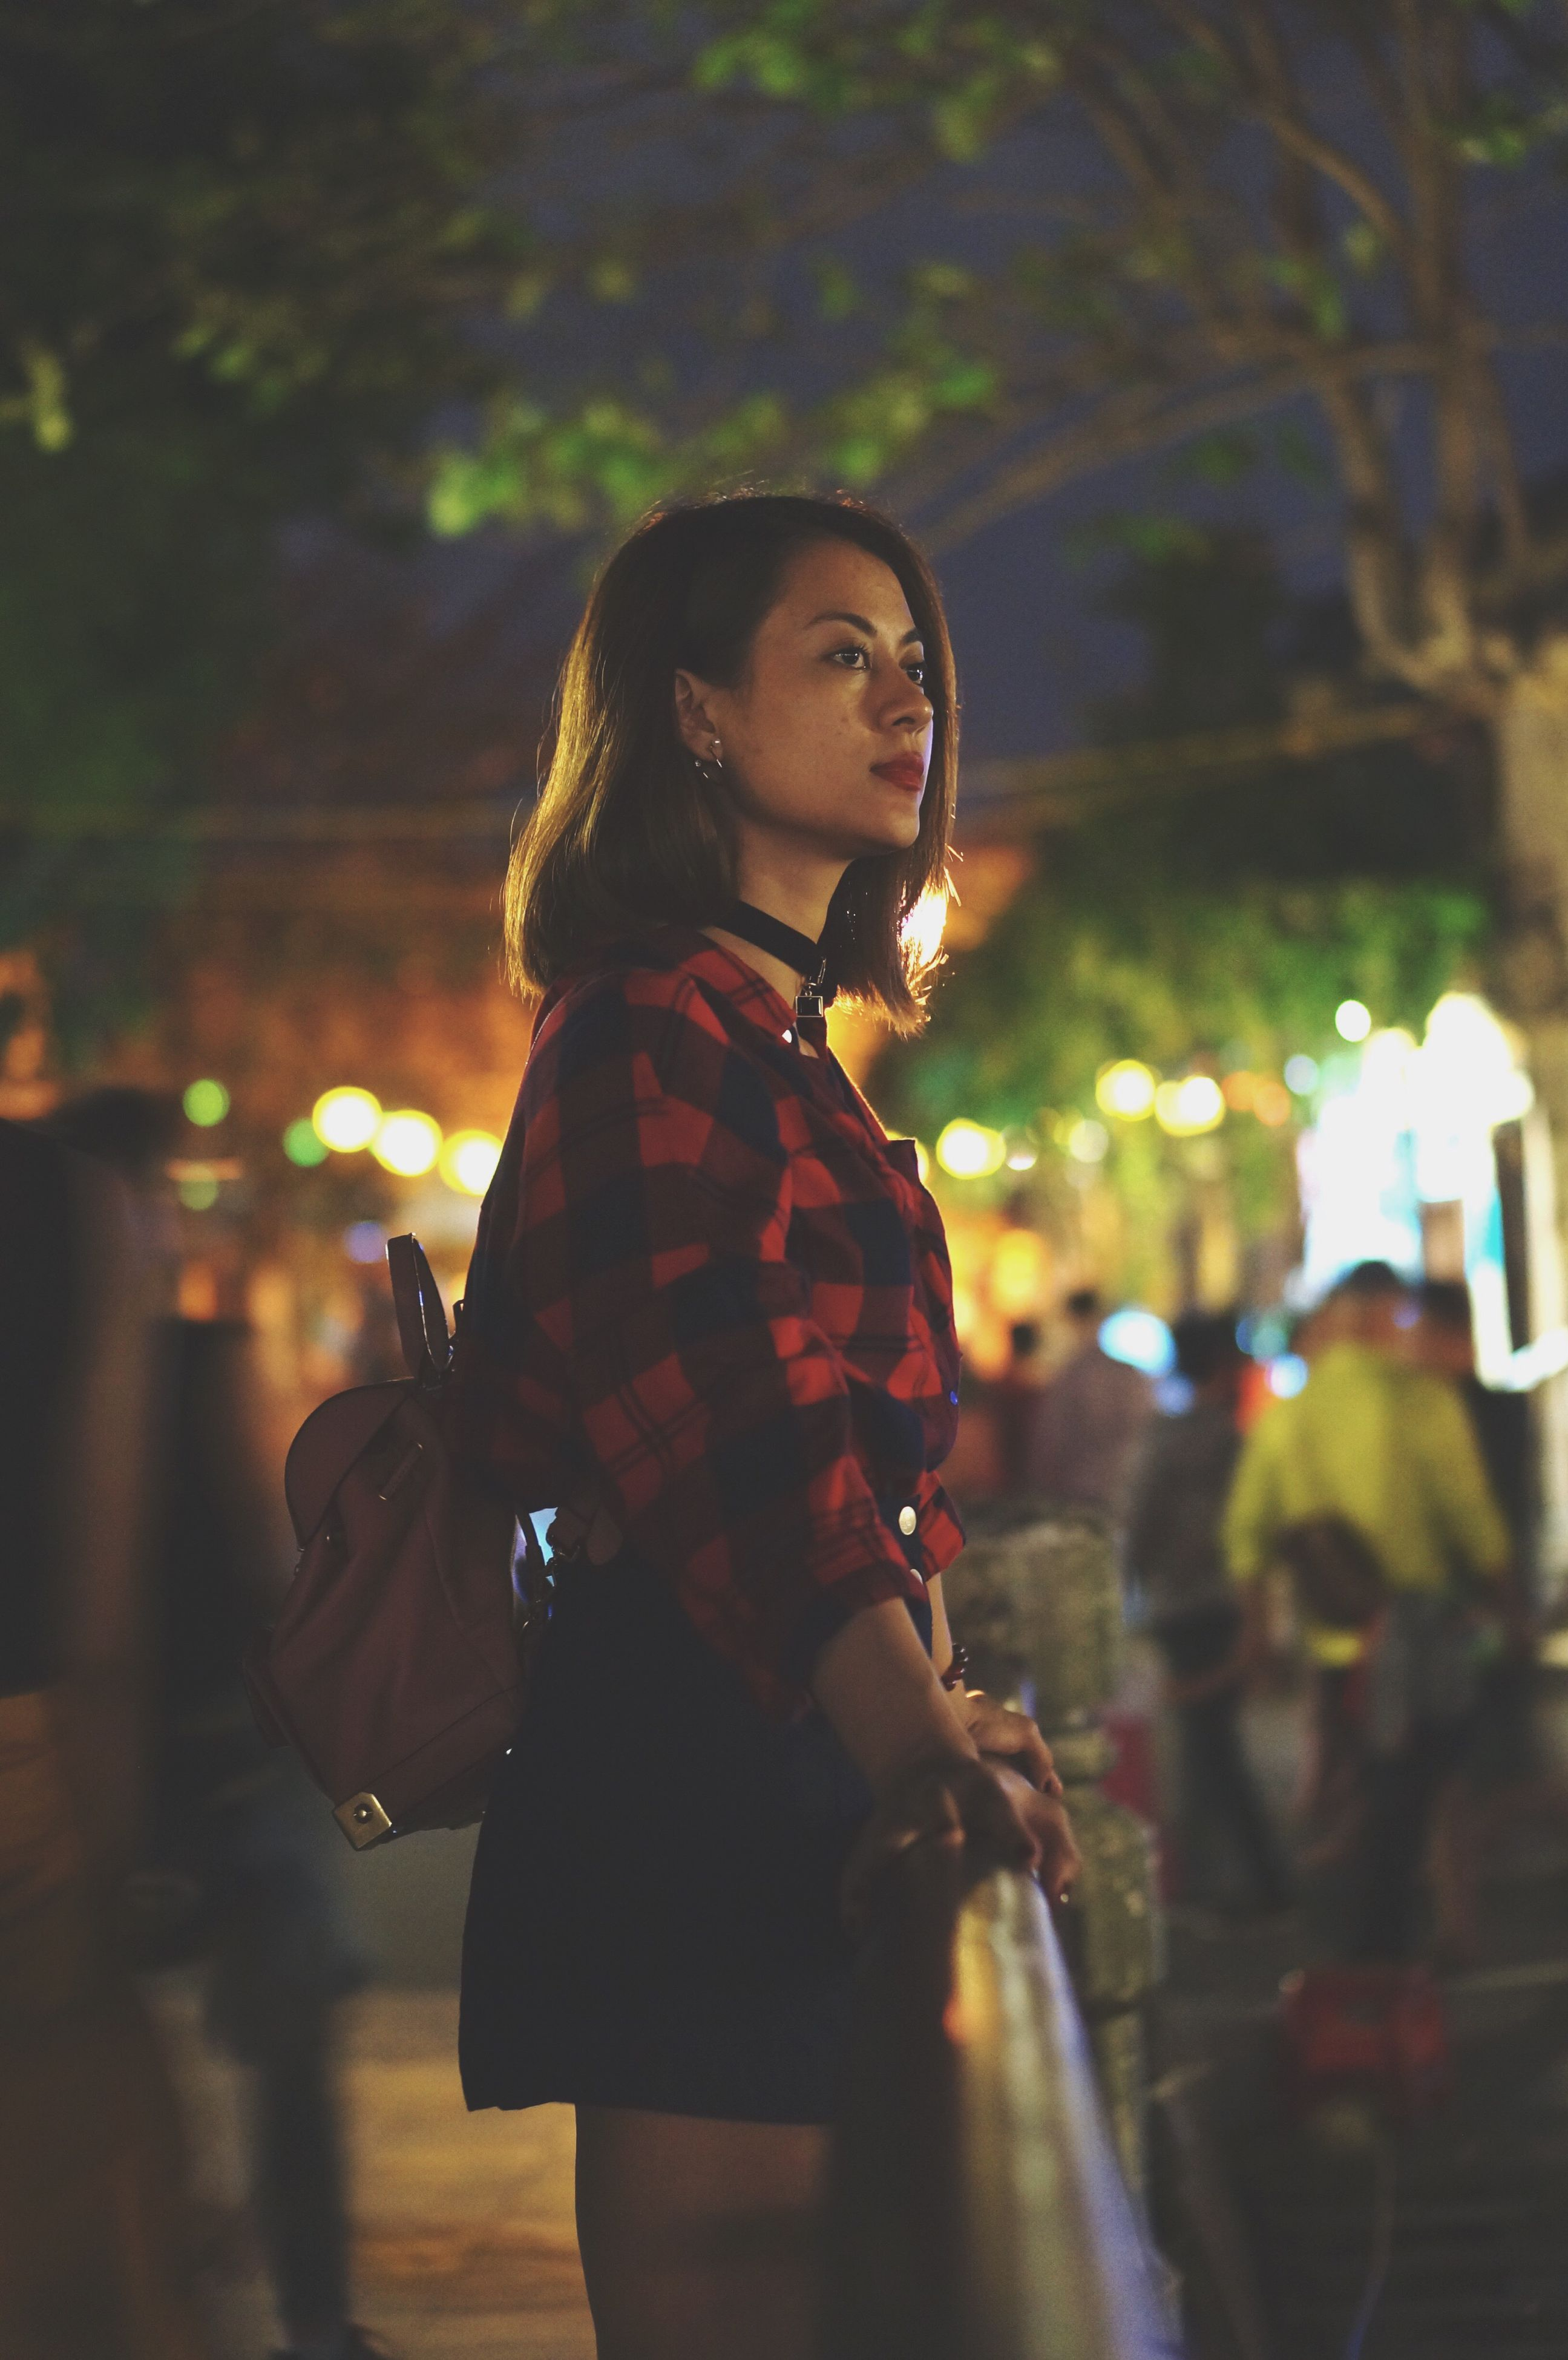 night, three quarter length, shopping bag, real people, focus on foreground, street, lifestyles, leisure activity, one person, outdoors, young adult, standing, young women, women, illuminated, city, people